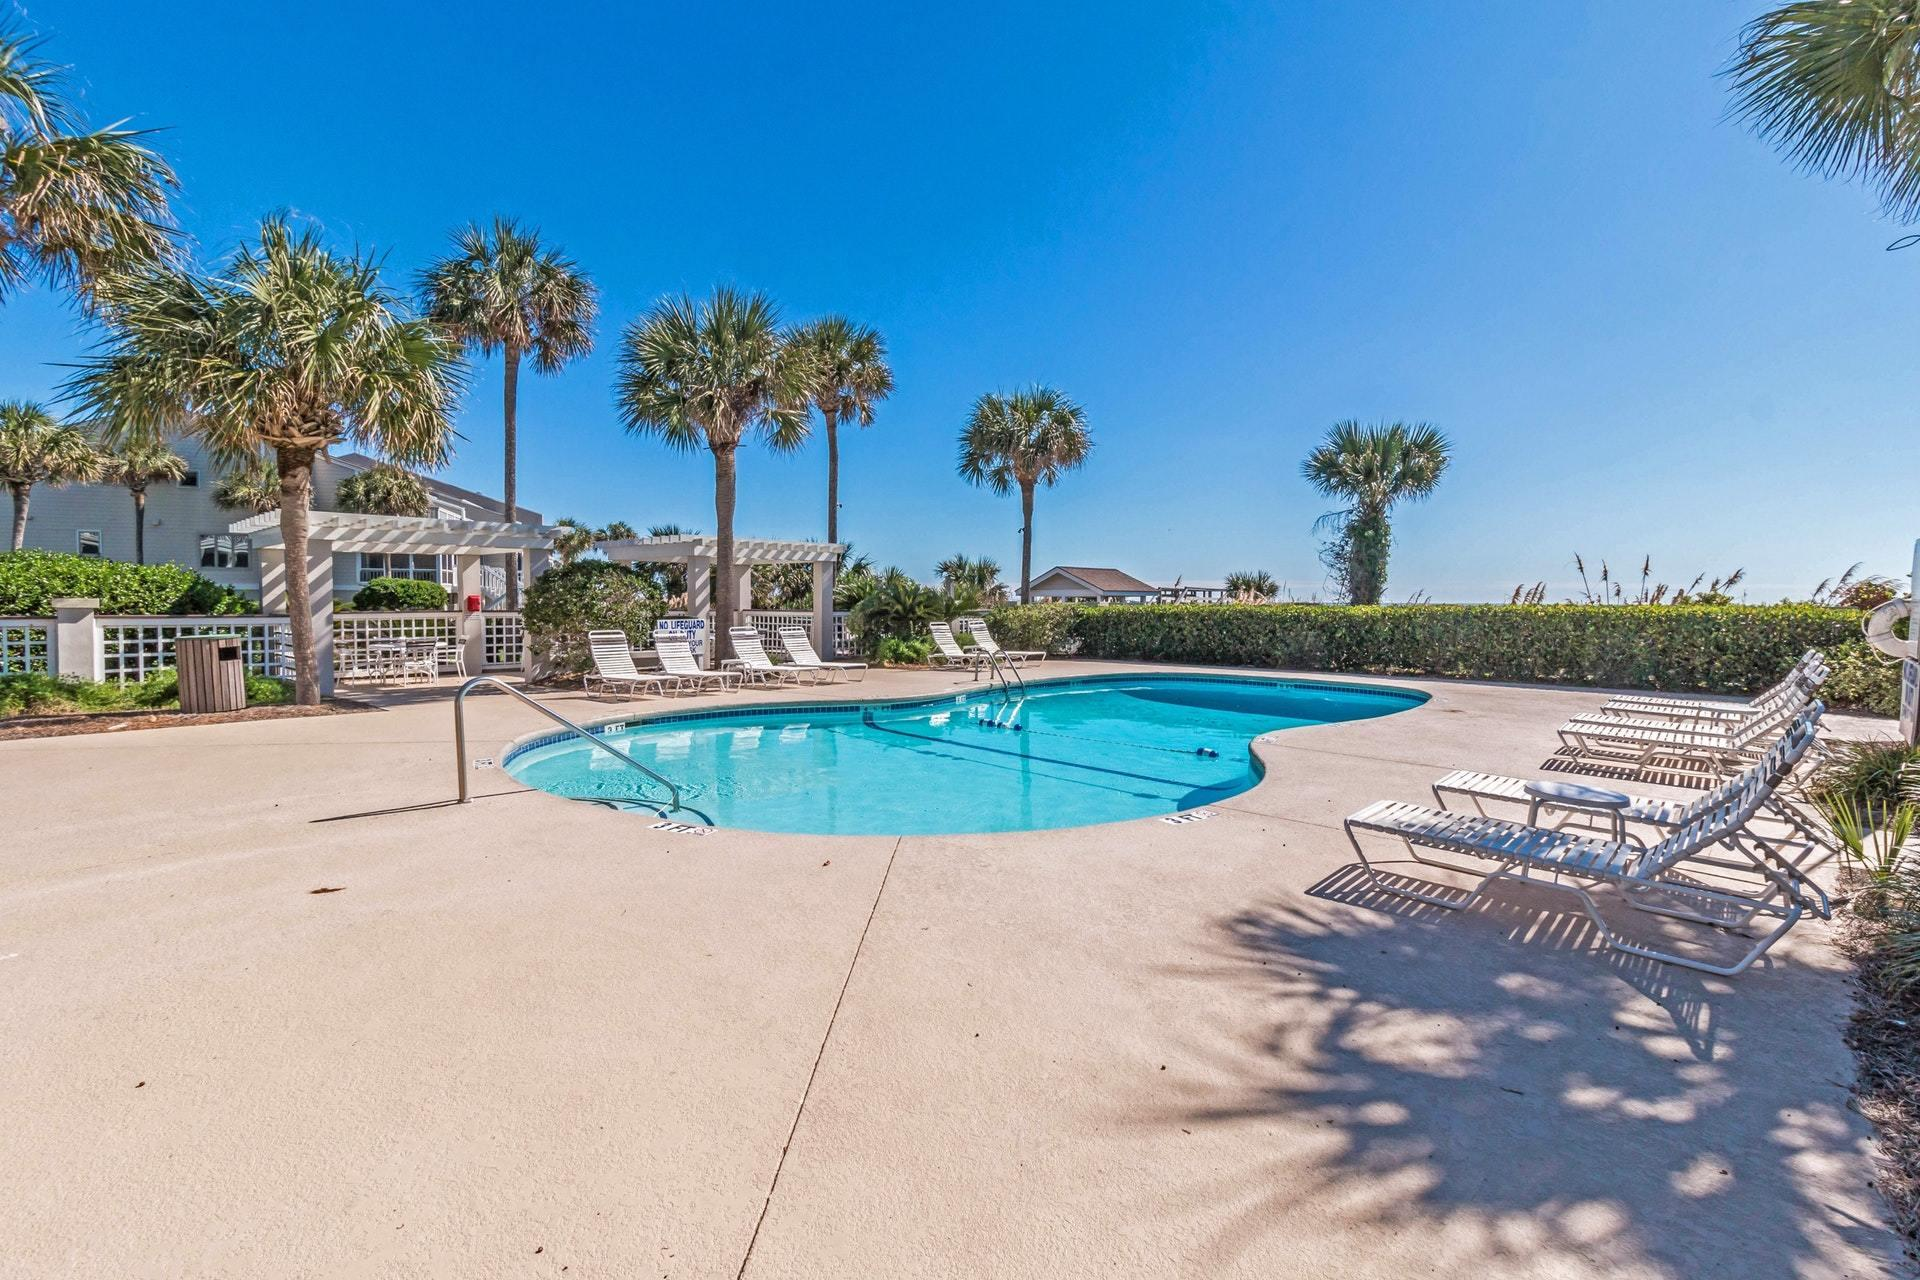 Beach Club Villas Homes For Sale - 51 Beach Club Villas, Isle of Palms, SC - 28